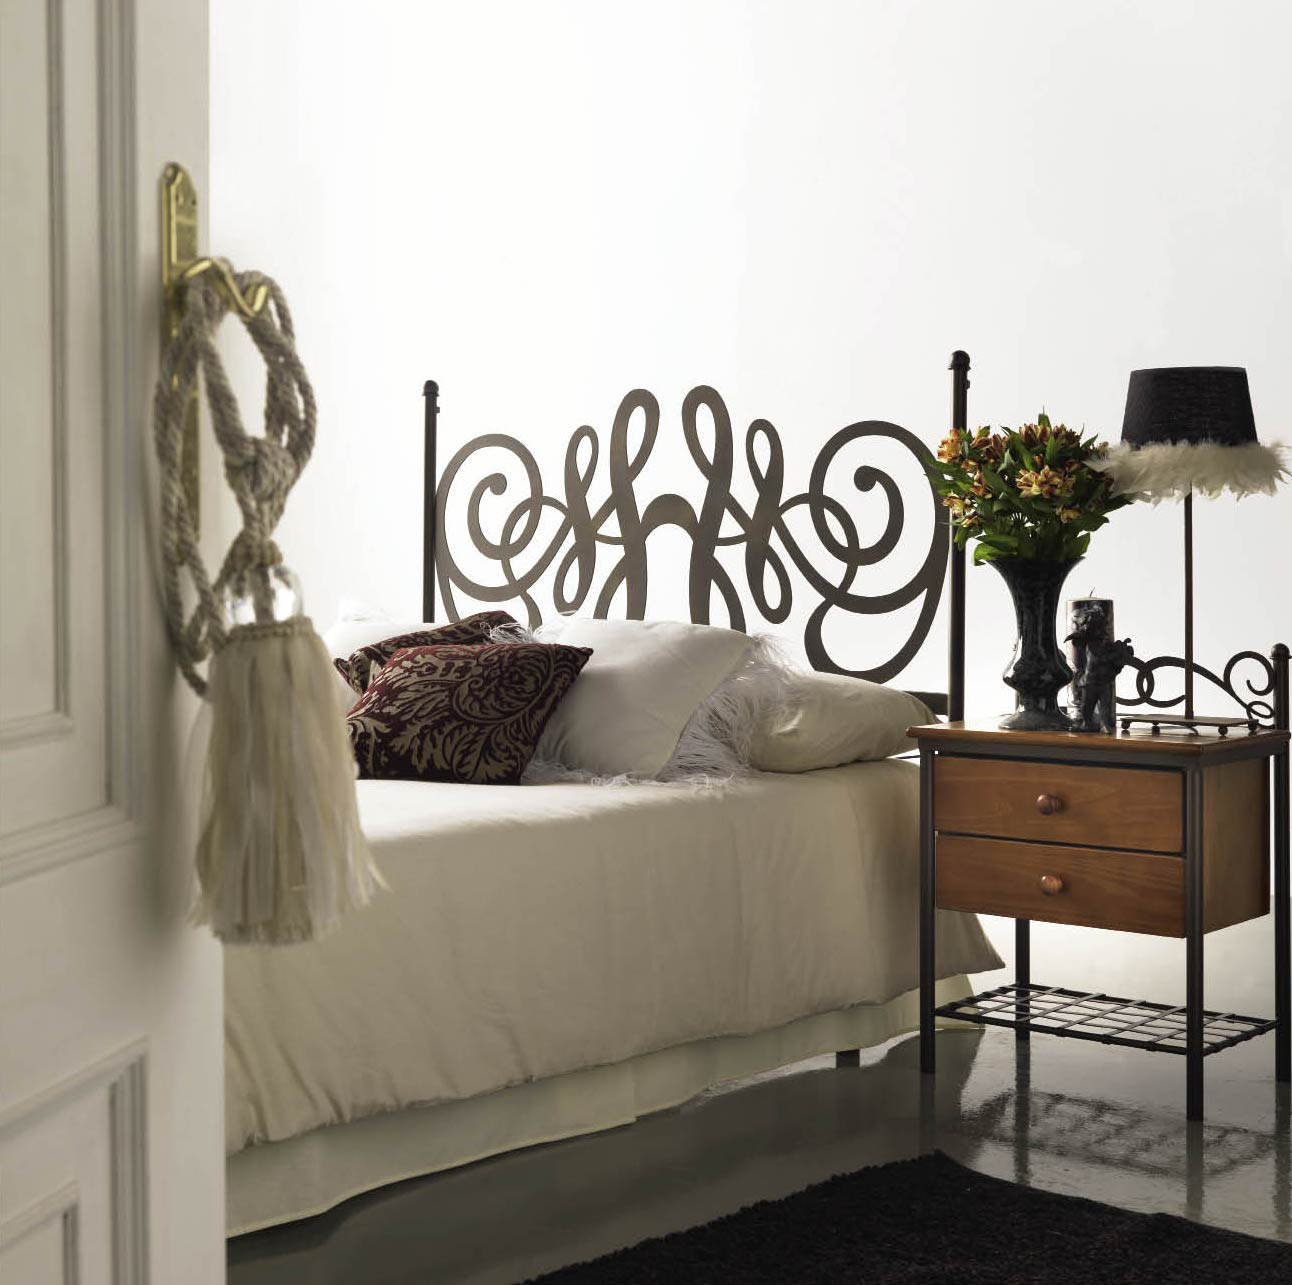 t te de lit m tal et fer forg organza 5847. Black Bedroom Furniture Sets. Home Design Ideas